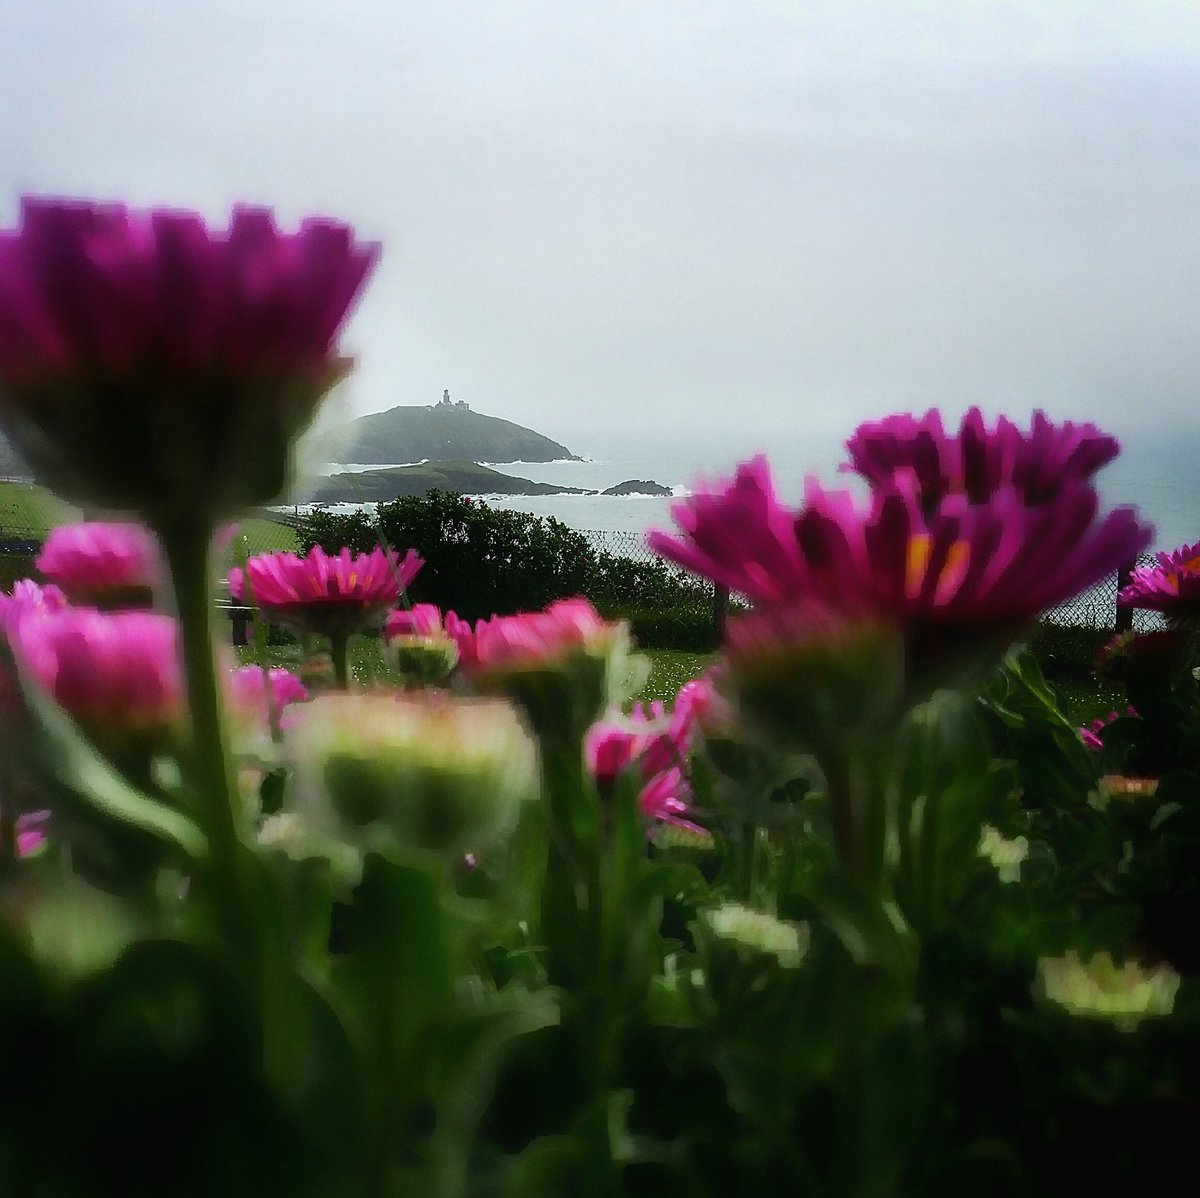 Seaside Daisy in the mist at Ballycotton, Co.Cork. @RandomCorkStuff @PhotosCork @yaycork #Ballycotton #cork <br>http://pic.twitter.com/kcfEARE3id